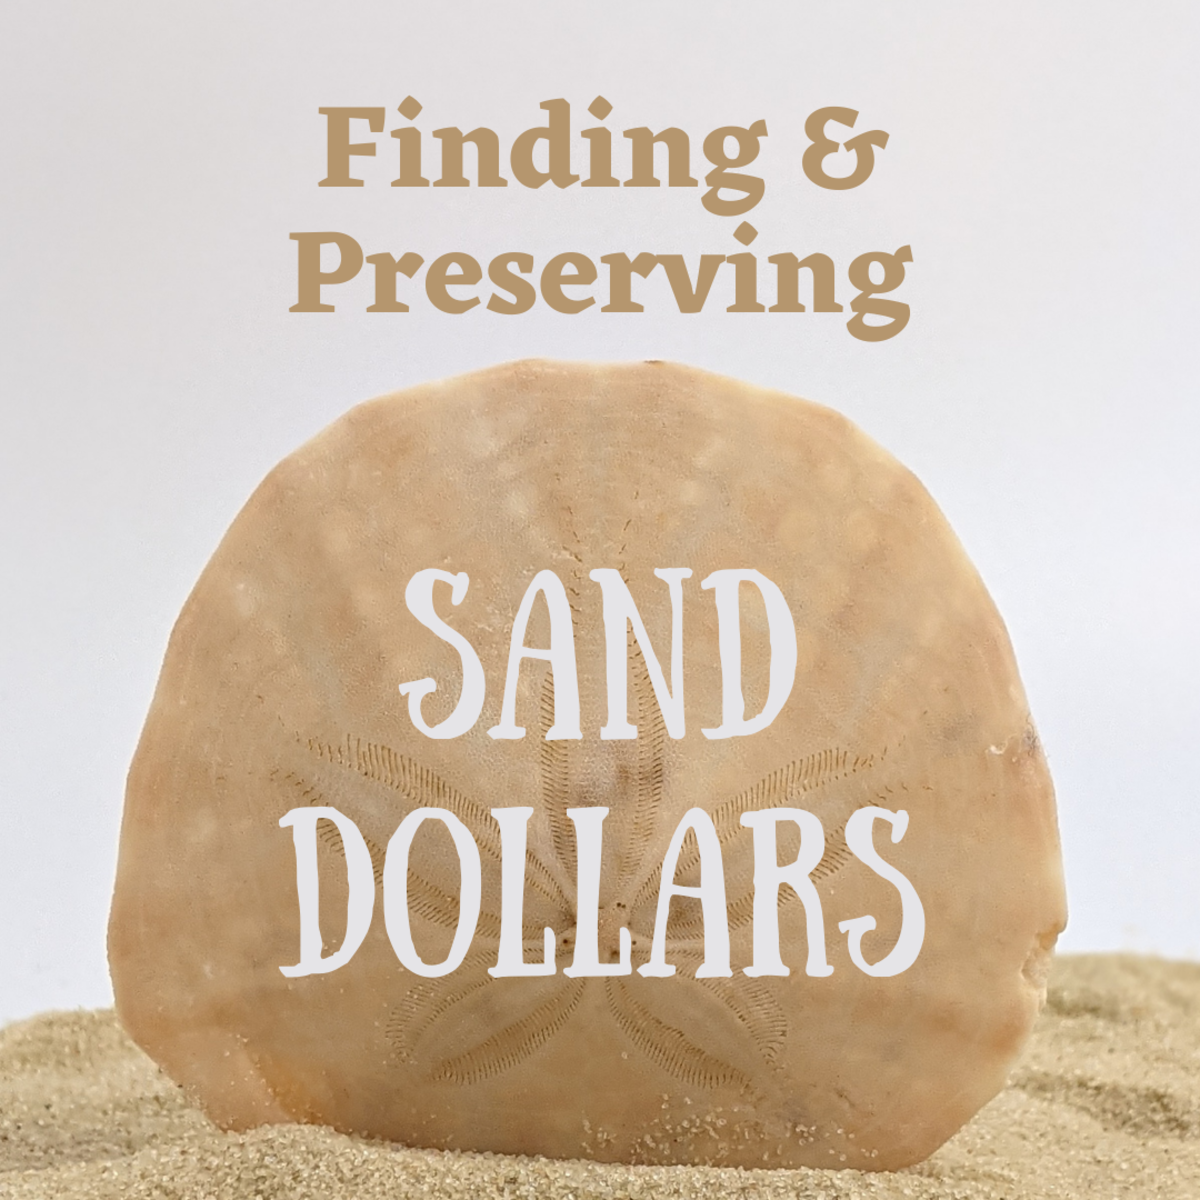 Learn how to identify and preserve sand dollars to use for craft projects.